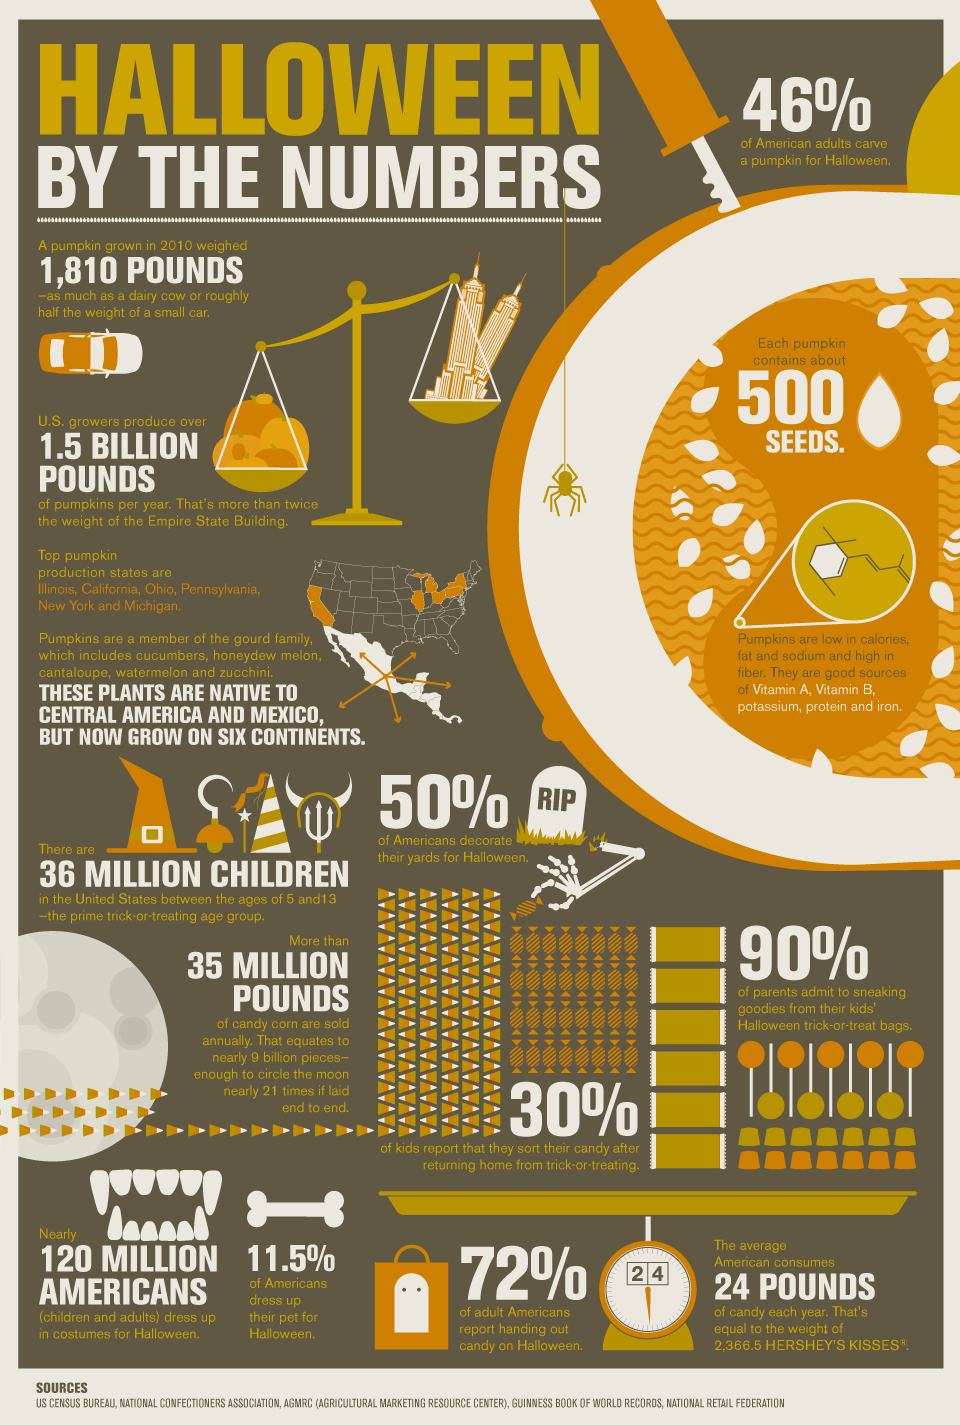 lets-understand-halloween-with-a-few-stats